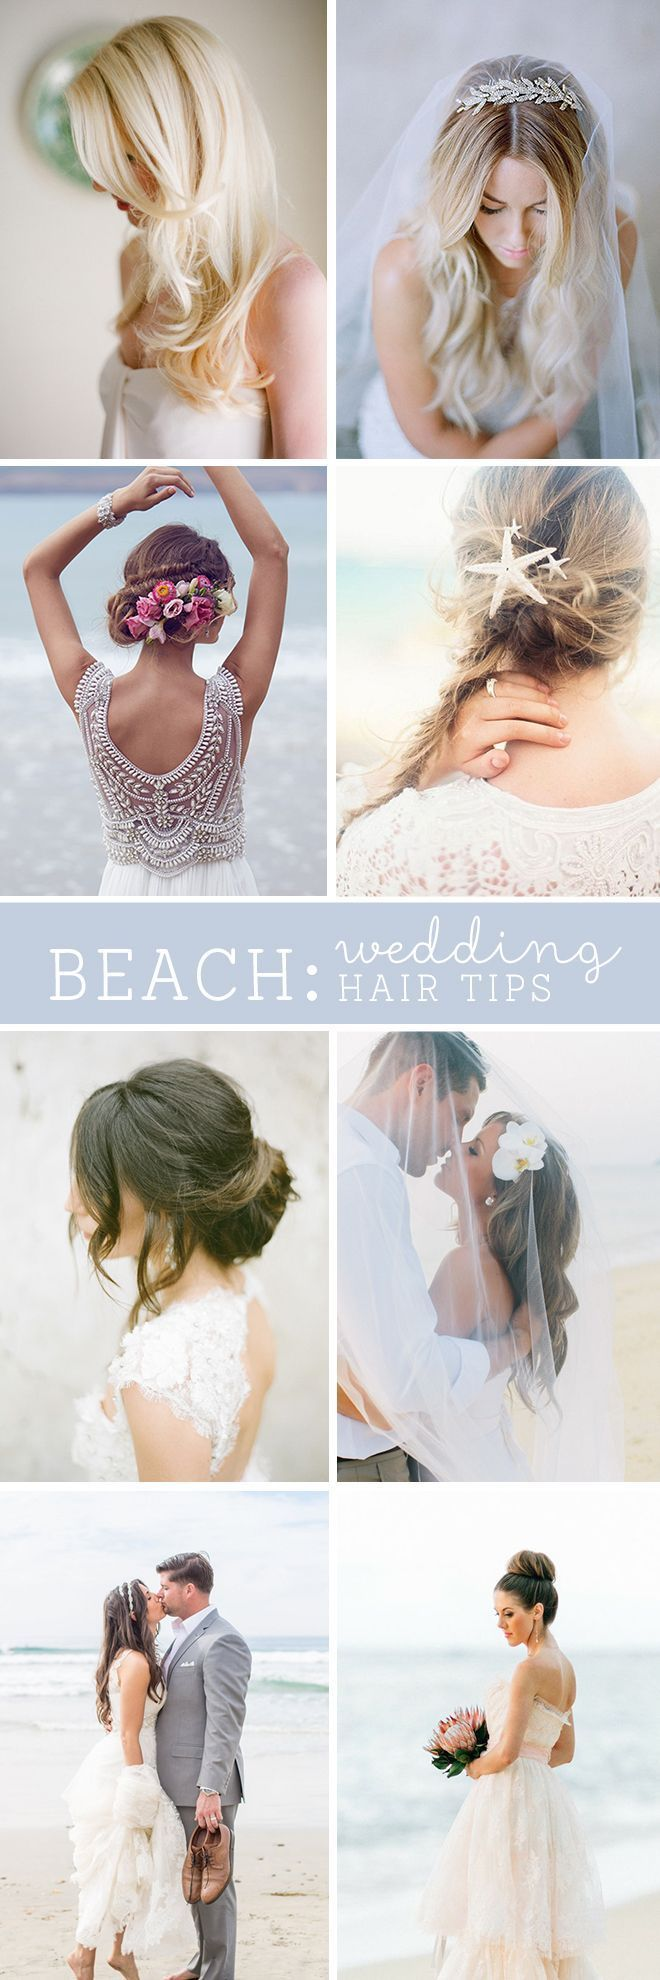 Here's a must read for awesome beach bridal hair tips and inspiration!